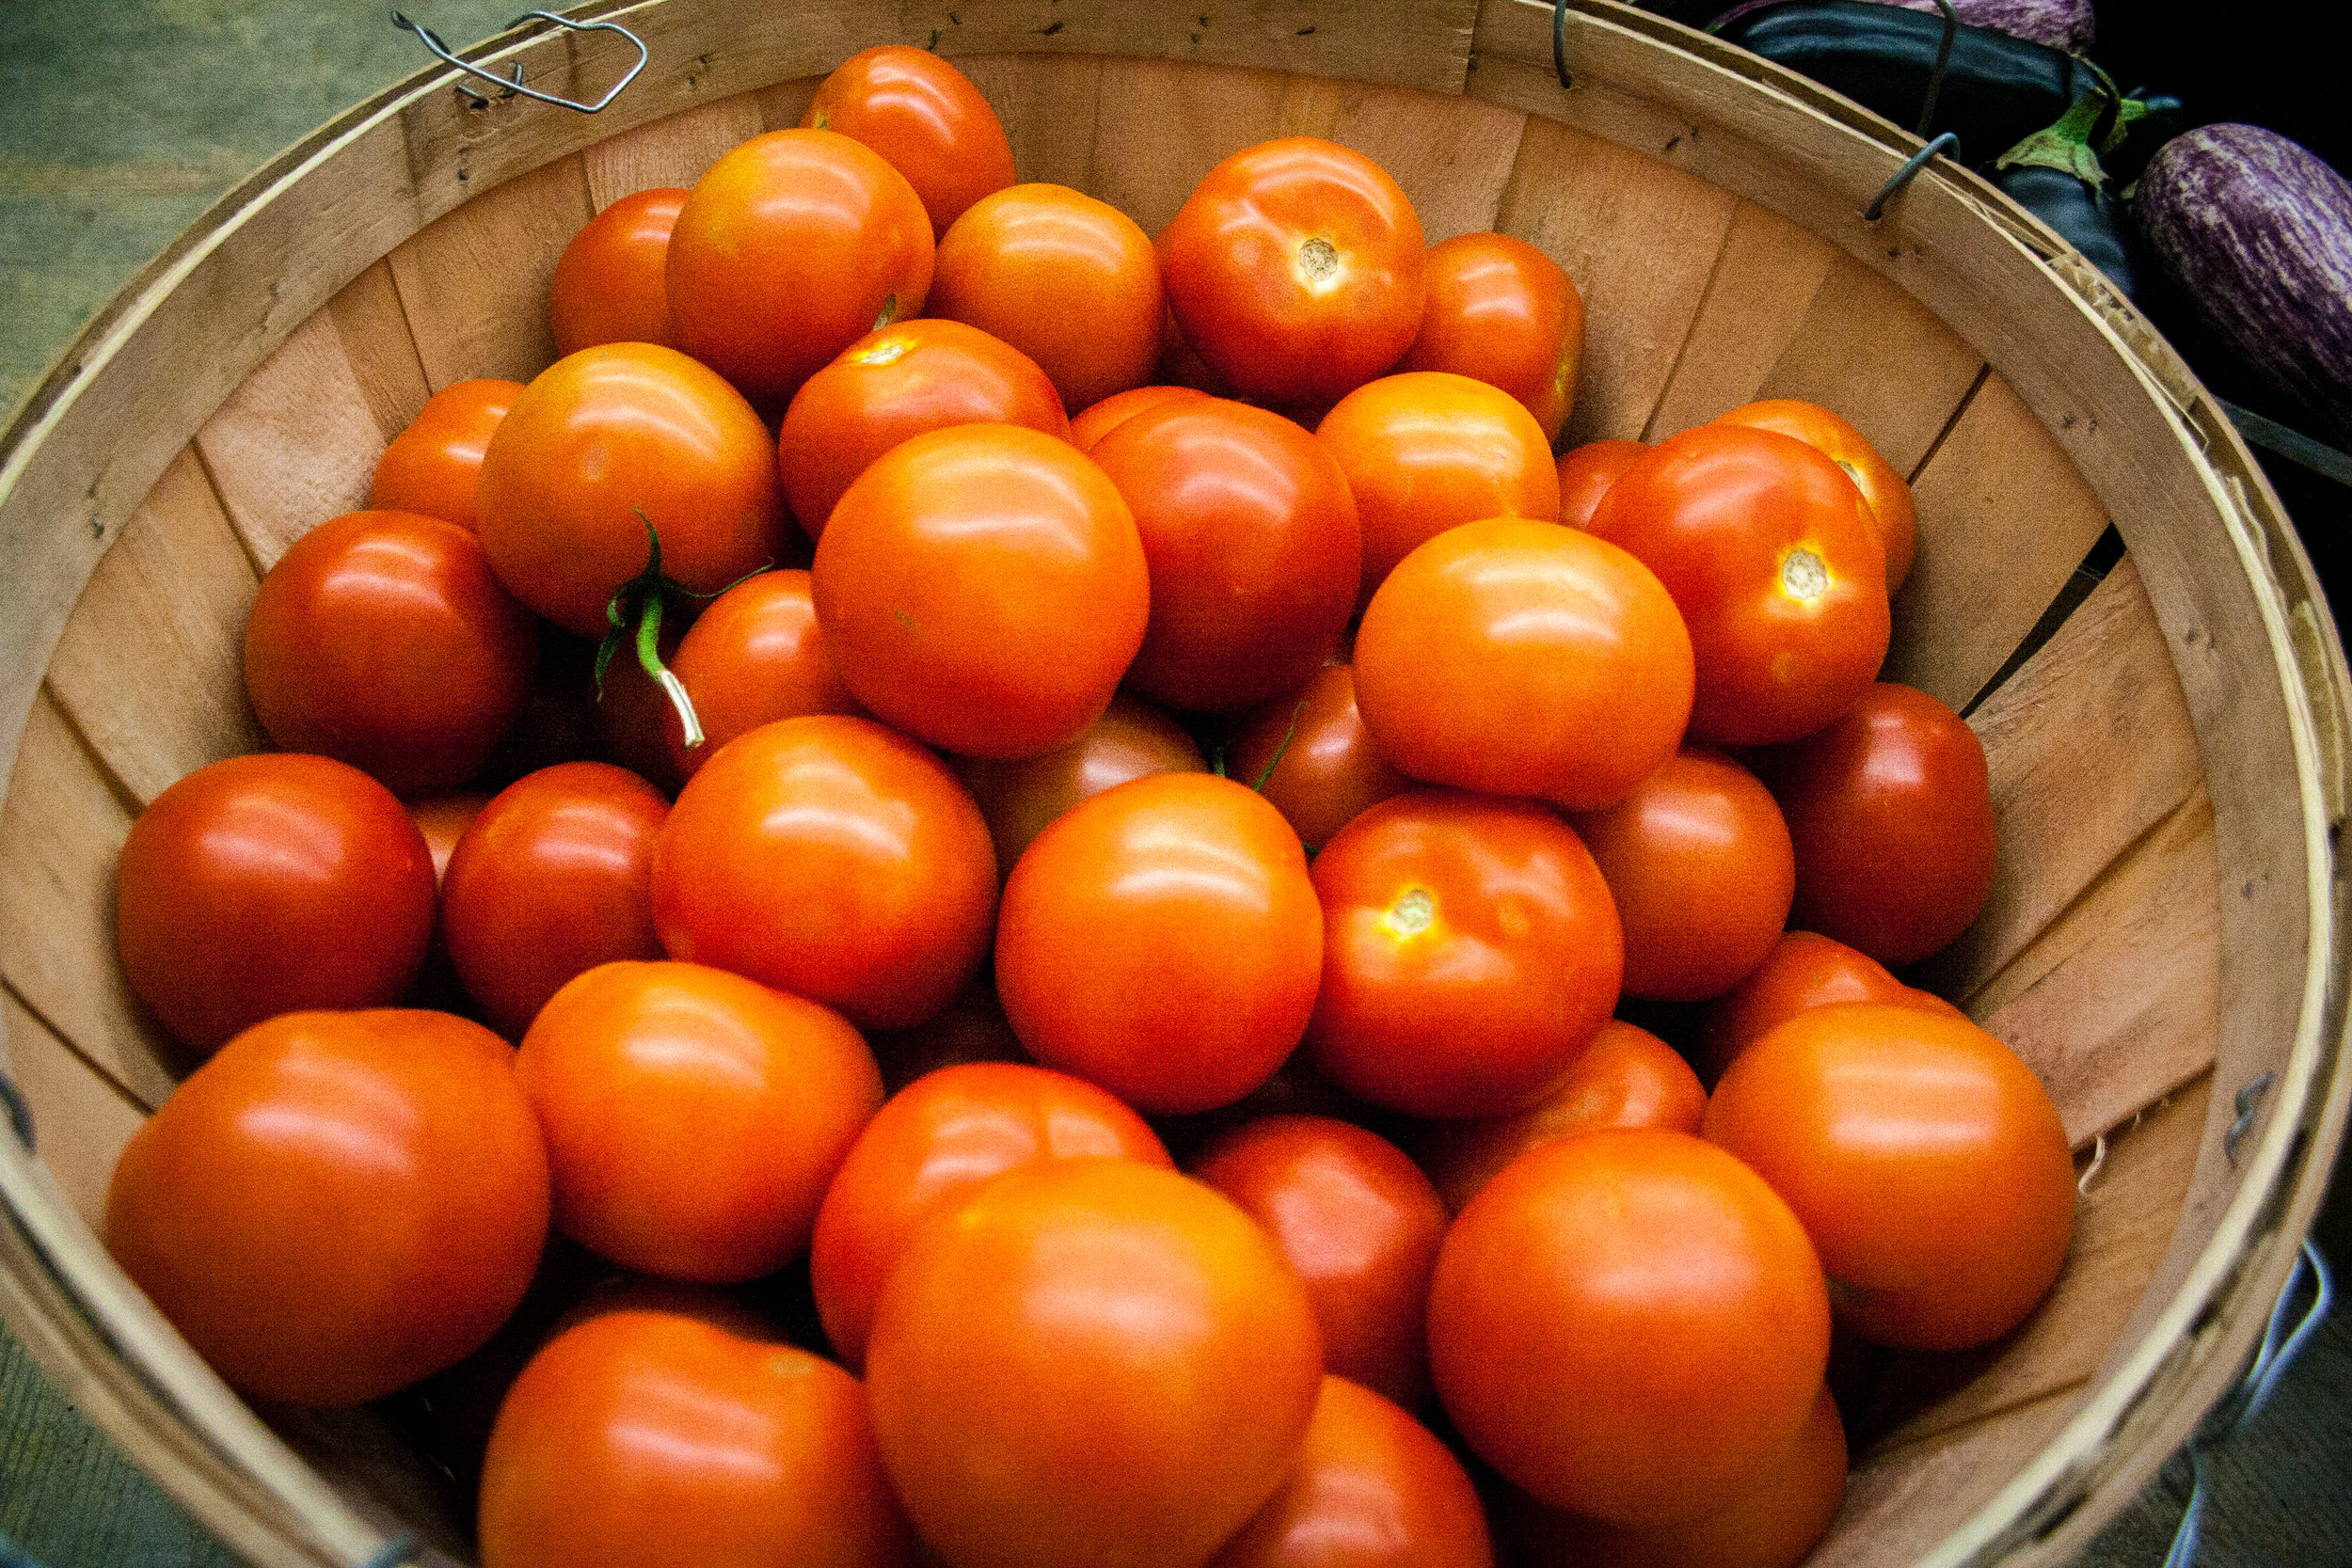 Imperfect tomatoes